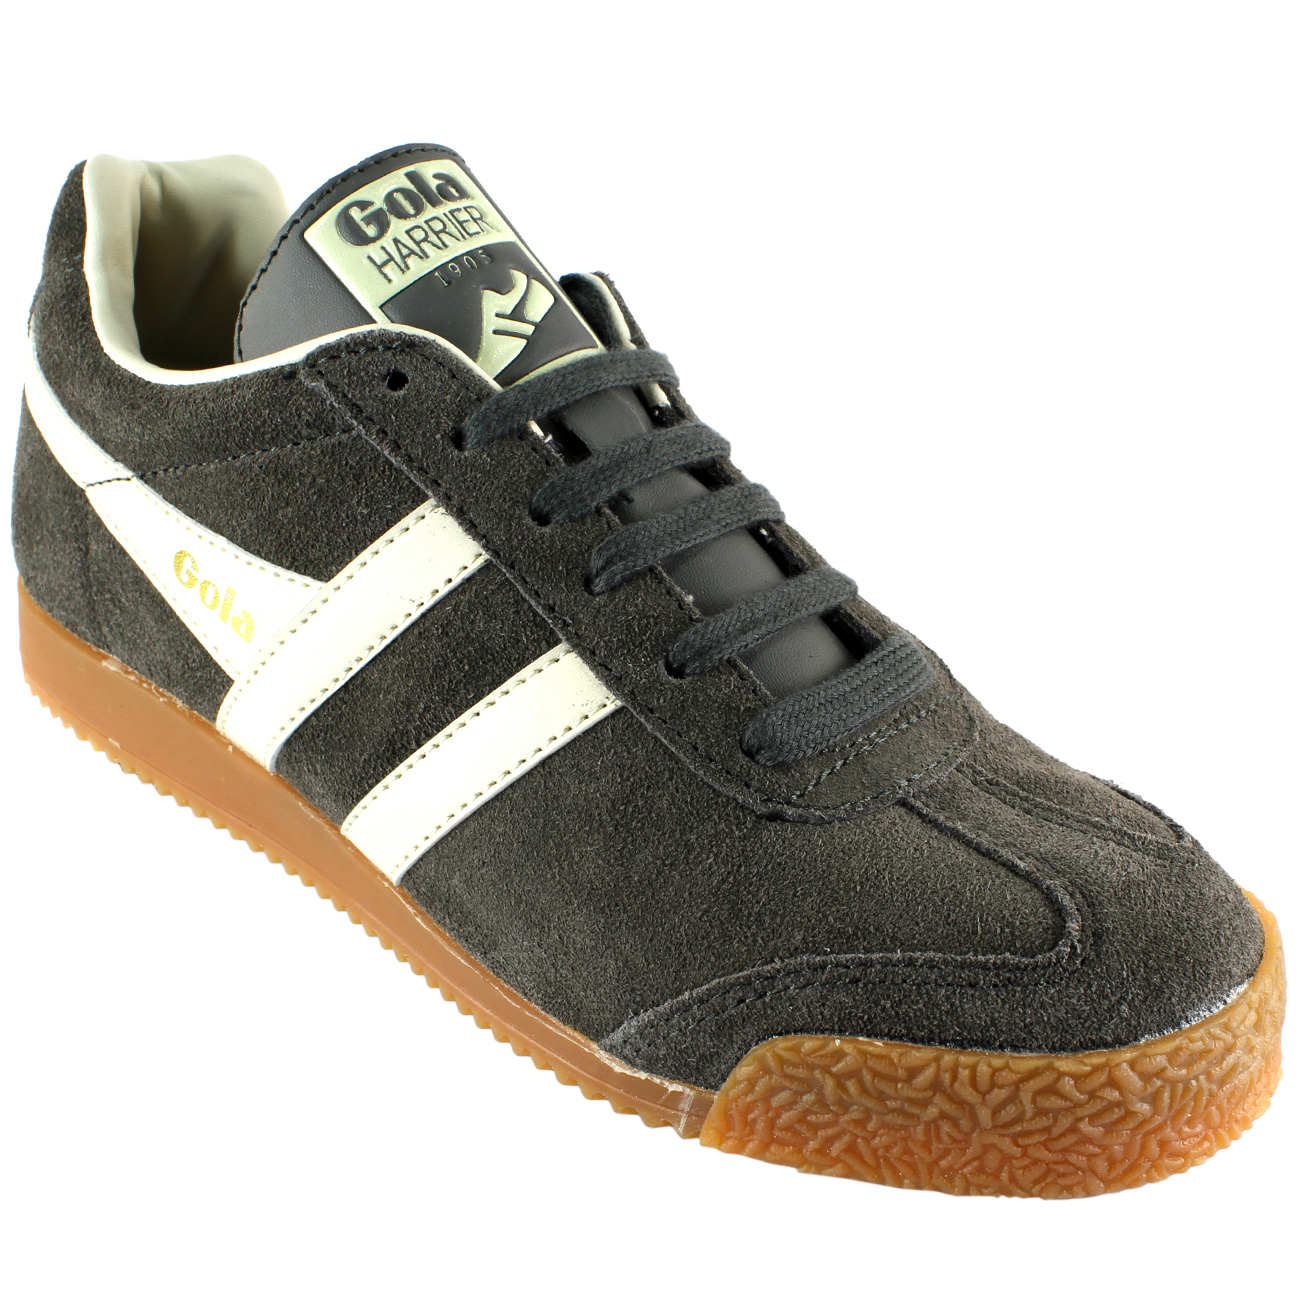 Striped Harrier All Trainers Low Gola Running White Suede Top Womens 0vxpwqU1